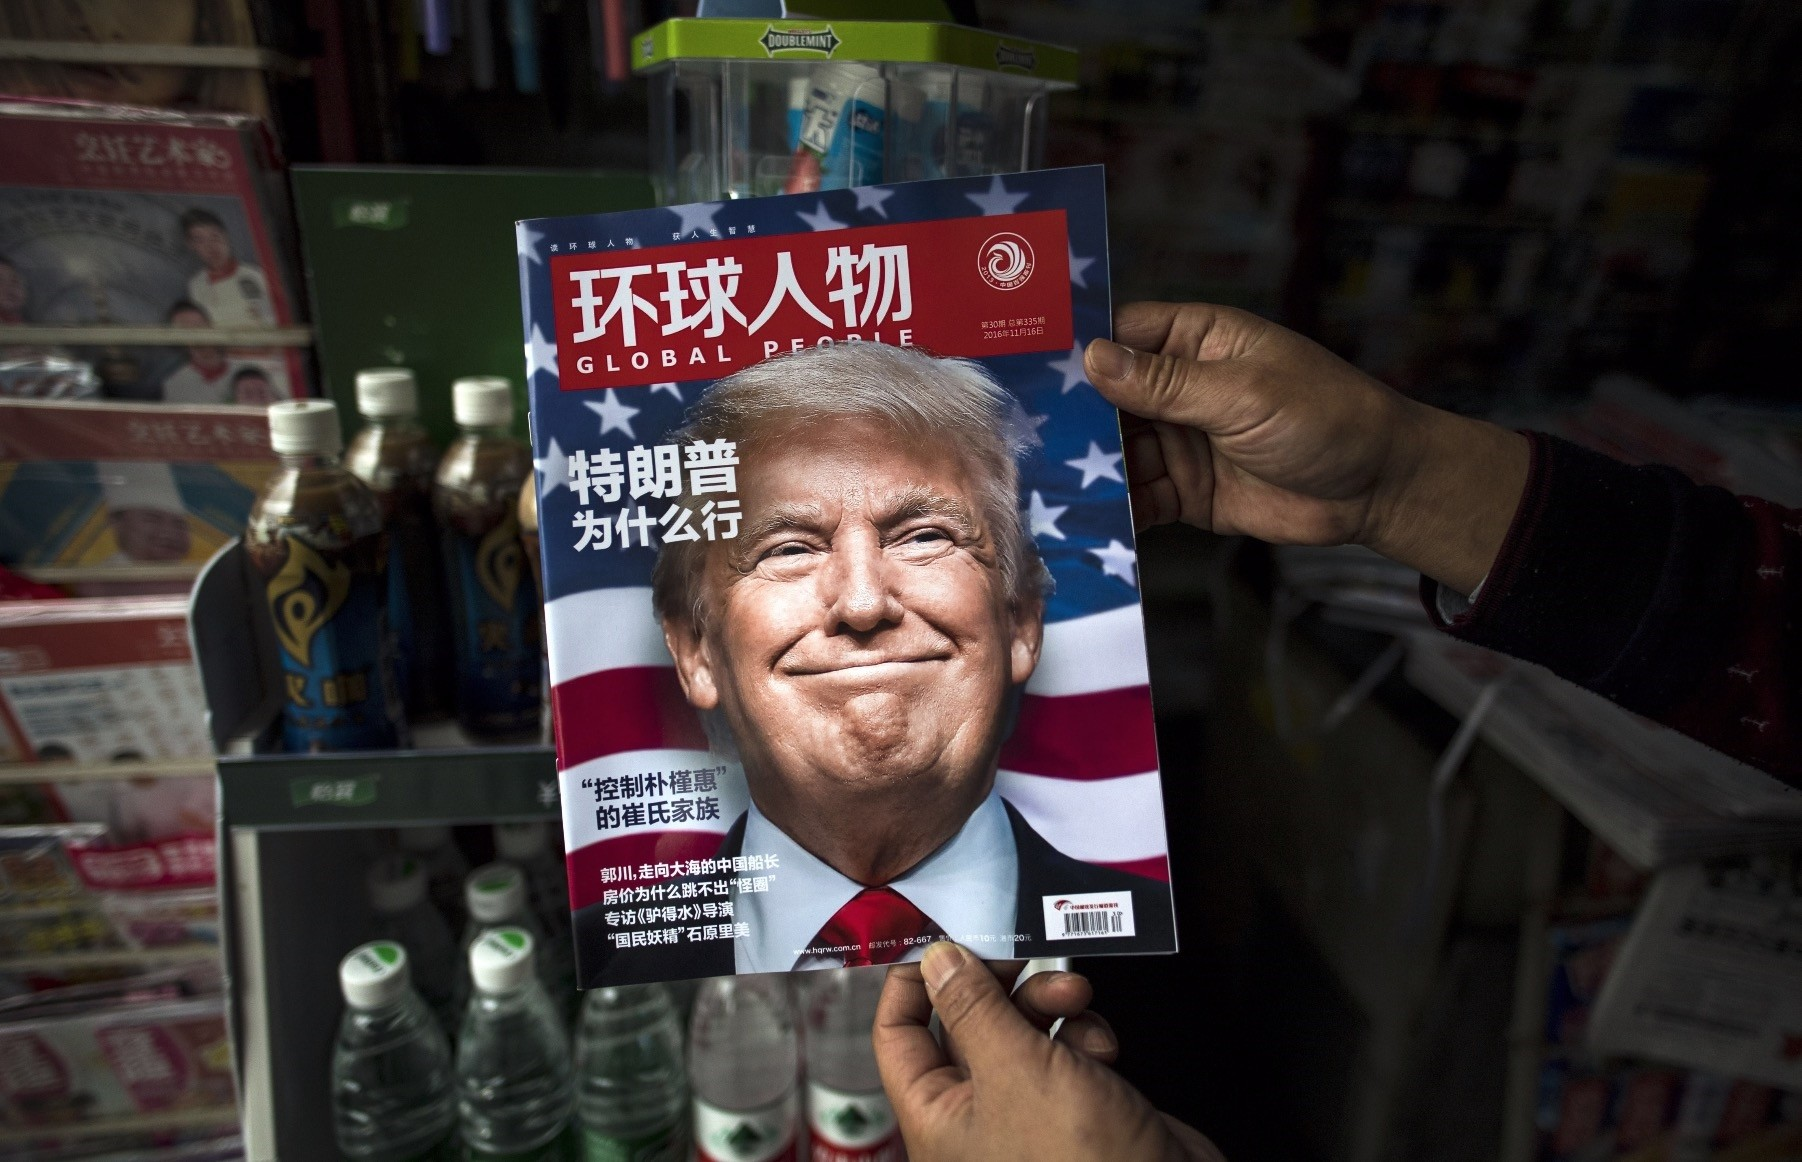 A copy of the local Chinese magazine Global People with a cover story that translates to u201cWhy did Trump winu201d at a news stand in Shanghai, China, Nov. 14, 2016.